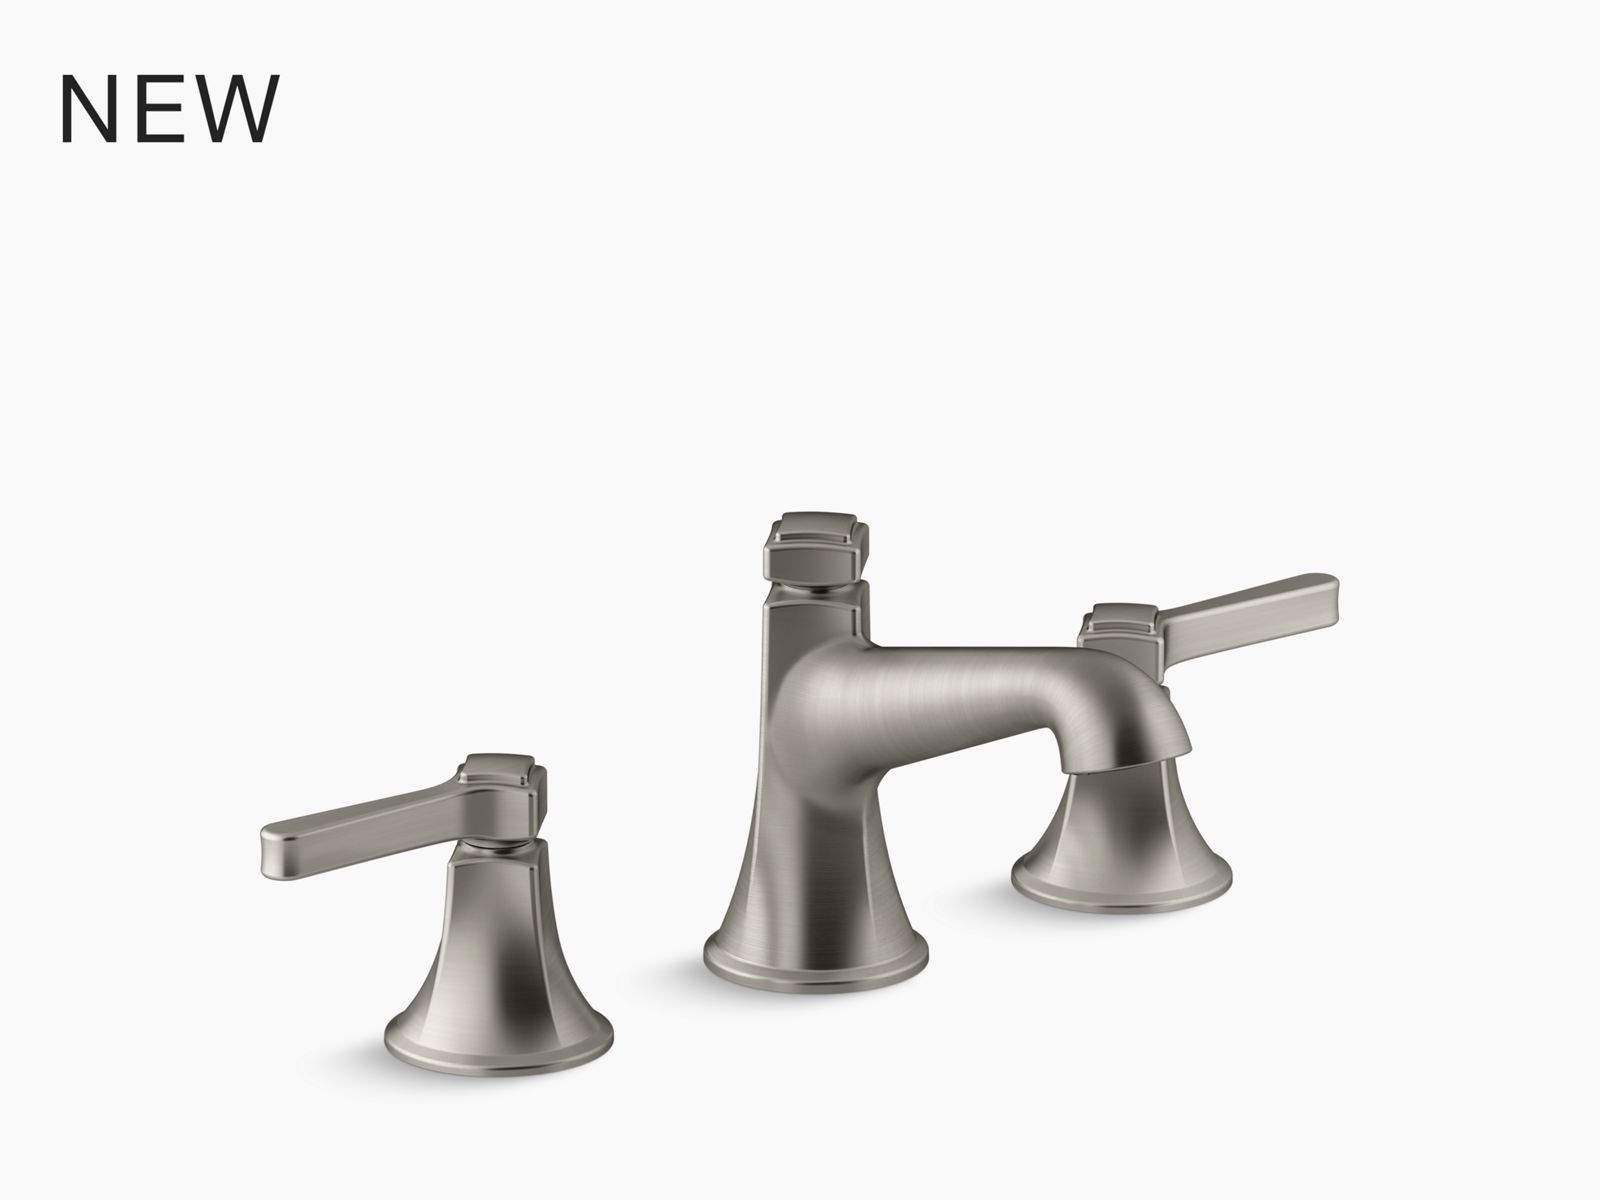 purist widespread bathroom sink faucet with low lever handles and low spout